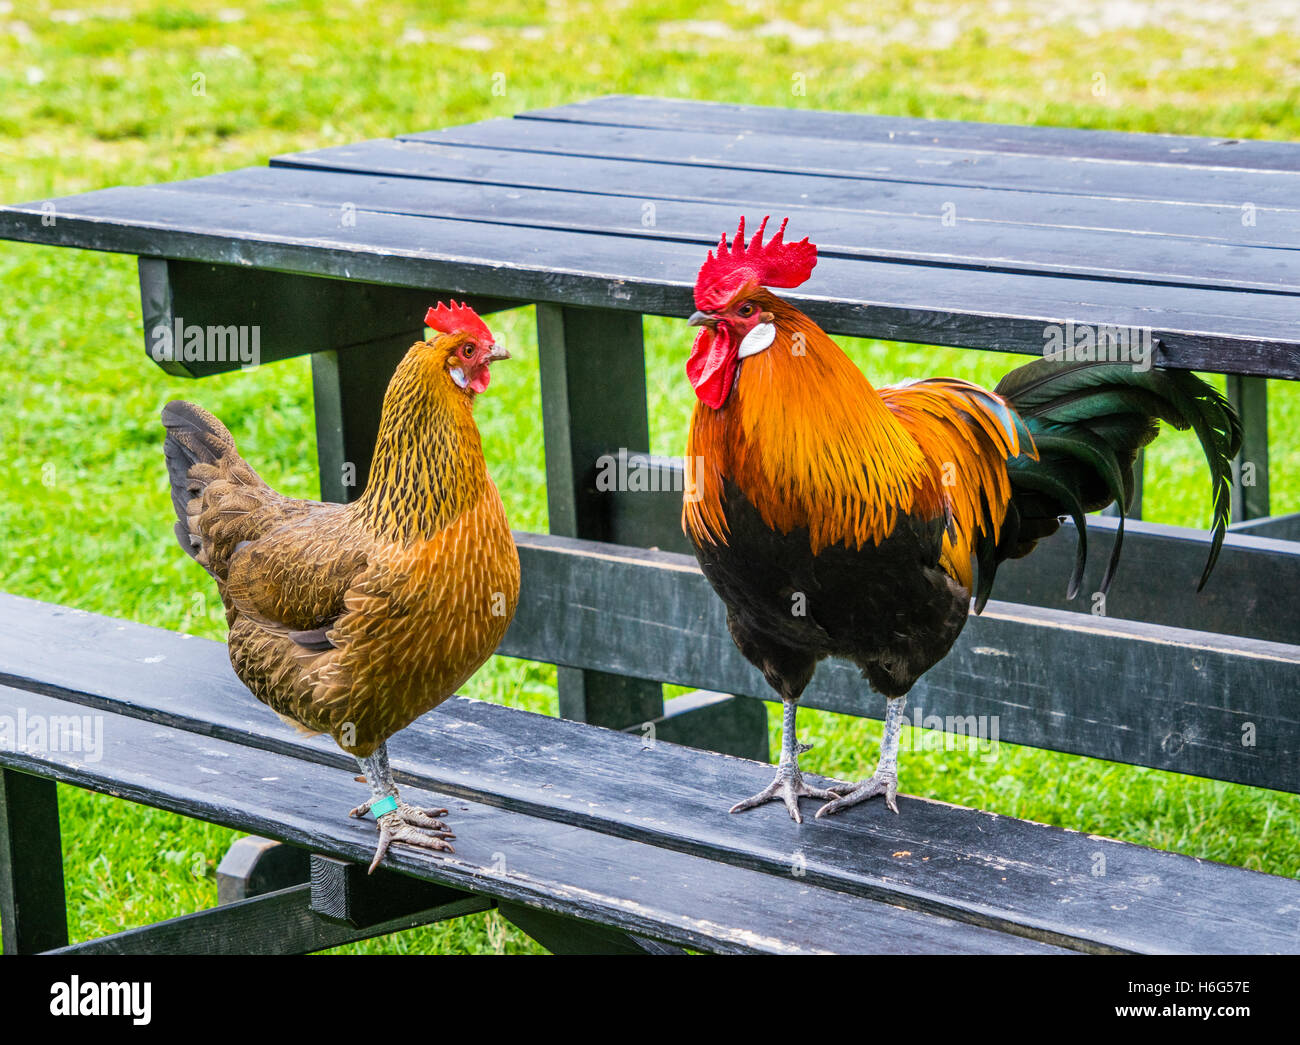 Denmark, Funen, Odense, hen and rooster occupy a picnic table at the Funen village open air museum Stock Photo